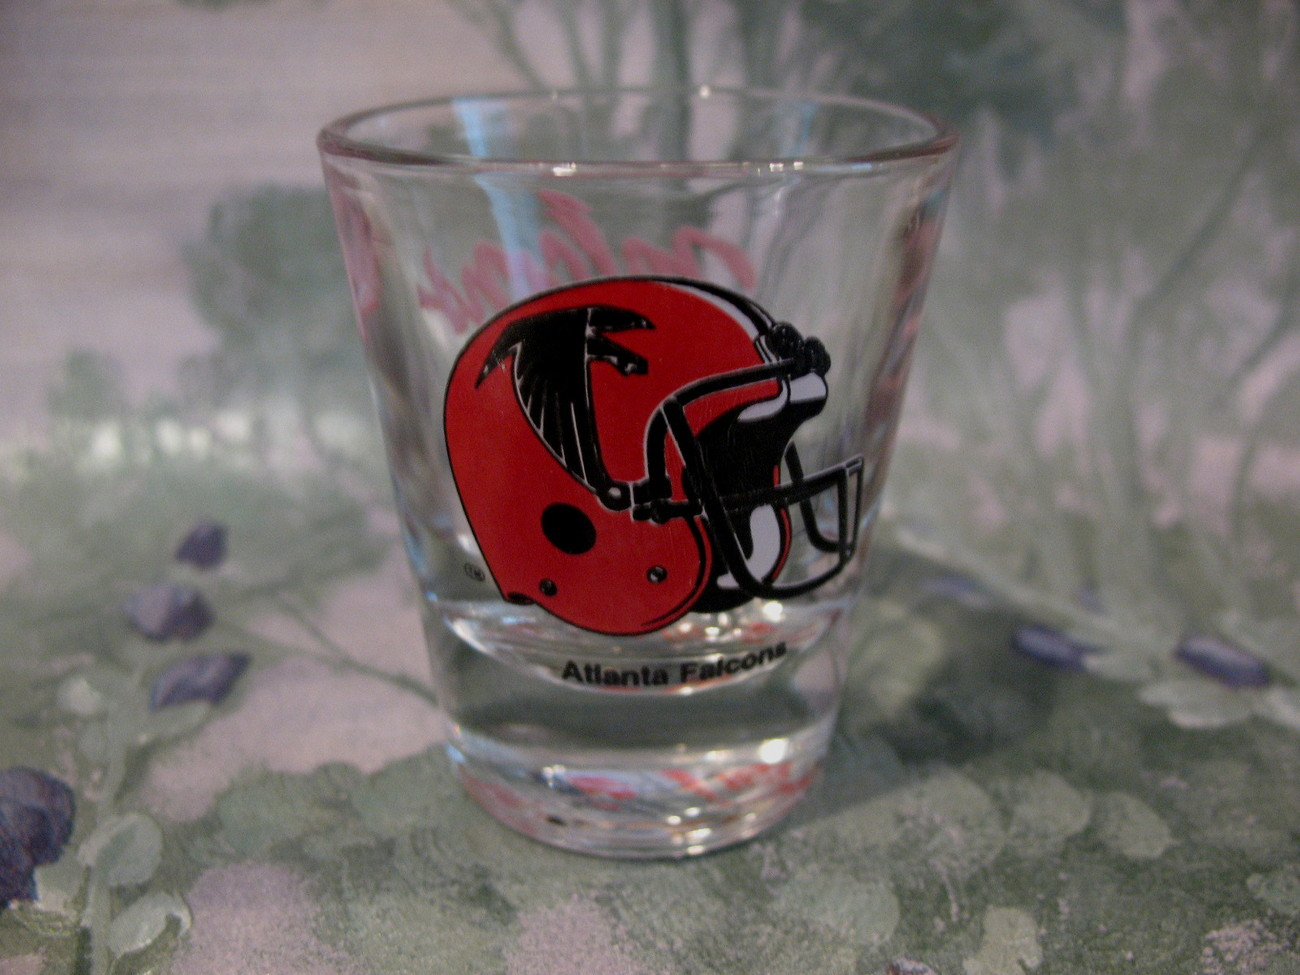 Atlanta Falcons Football Team Collector Souvenir Shot Glass